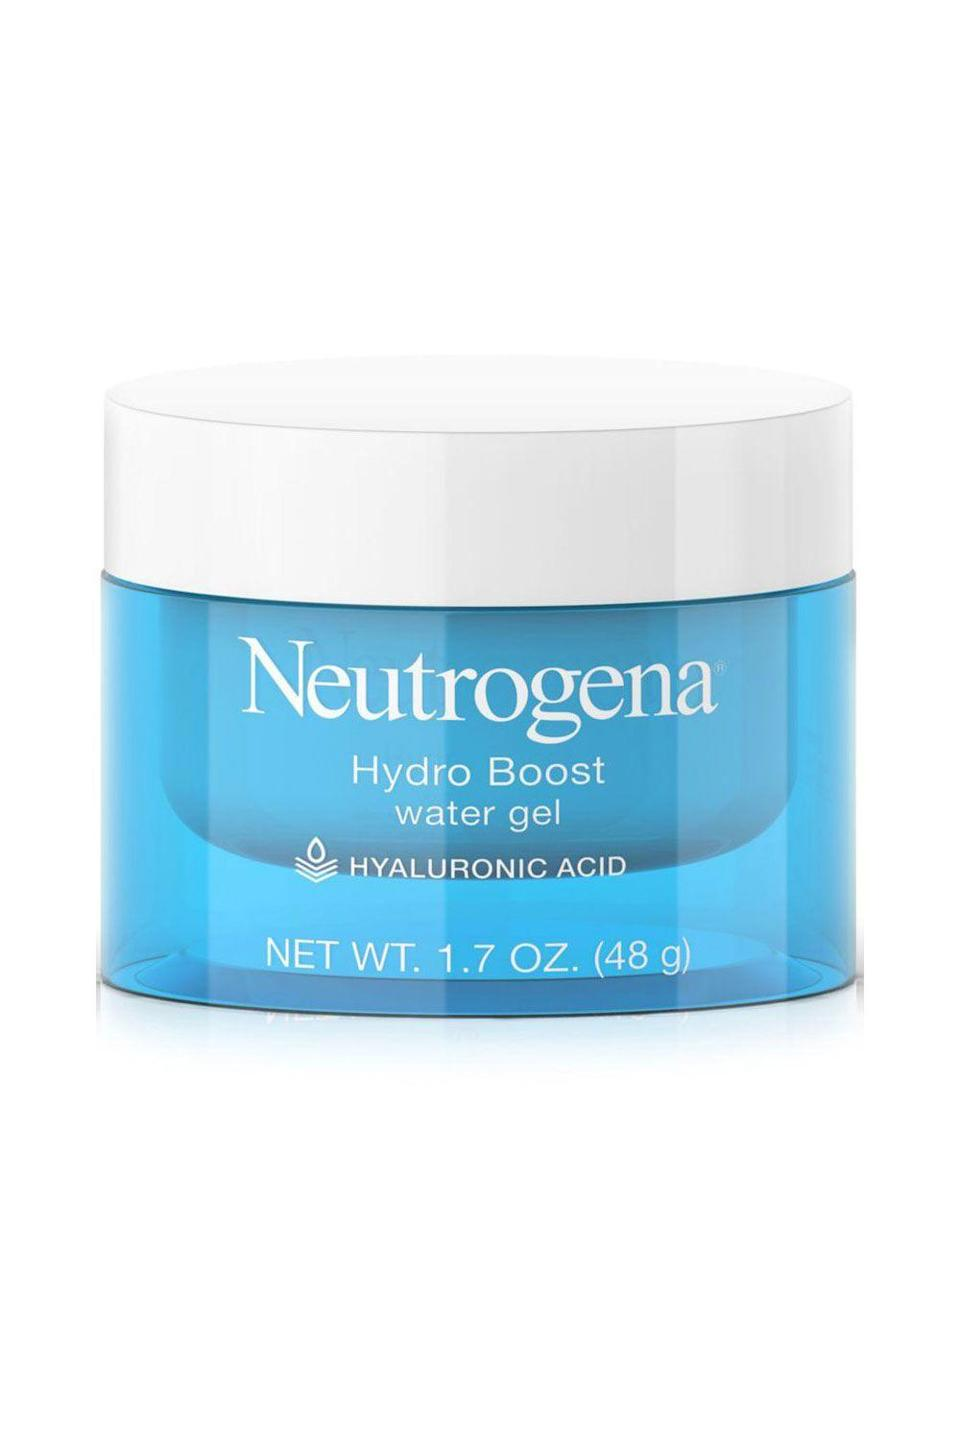 """<p><strong>Neutrogena</strong></p><p>amazon.com</p><p><strong>$14.62</strong></p><p><a href=""""https://www.amazon.com/dp/B00NR1YQHM?tag=syn-yahoo-20&ascsubtag=%5Bartid%7C10072.g.27529759%5Bsrc%7Cyahoo-us"""" rel=""""nofollow noopener"""" target=""""_blank"""" data-ylk=""""slk:Shop Now"""" class=""""link rapid-noclick-resp"""">Shop Now</a></p><p>""""This lightweight water gel has a great price point for a high grade hyaluronic acid-based moisturizer,"""" says <a href=""""https://springstderm.com/"""" rel=""""nofollow noopener"""" target=""""_blank"""" data-ylk=""""slk:Dr. Rita Linkner"""" class=""""link rapid-noclick-resp"""">Dr. Rita Linkner</a>, a dermatologist at Spring Street Dermatology. """"It works well for post laser procedures also to provide proper hydration for wound healing,"""" she adds.</p>"""